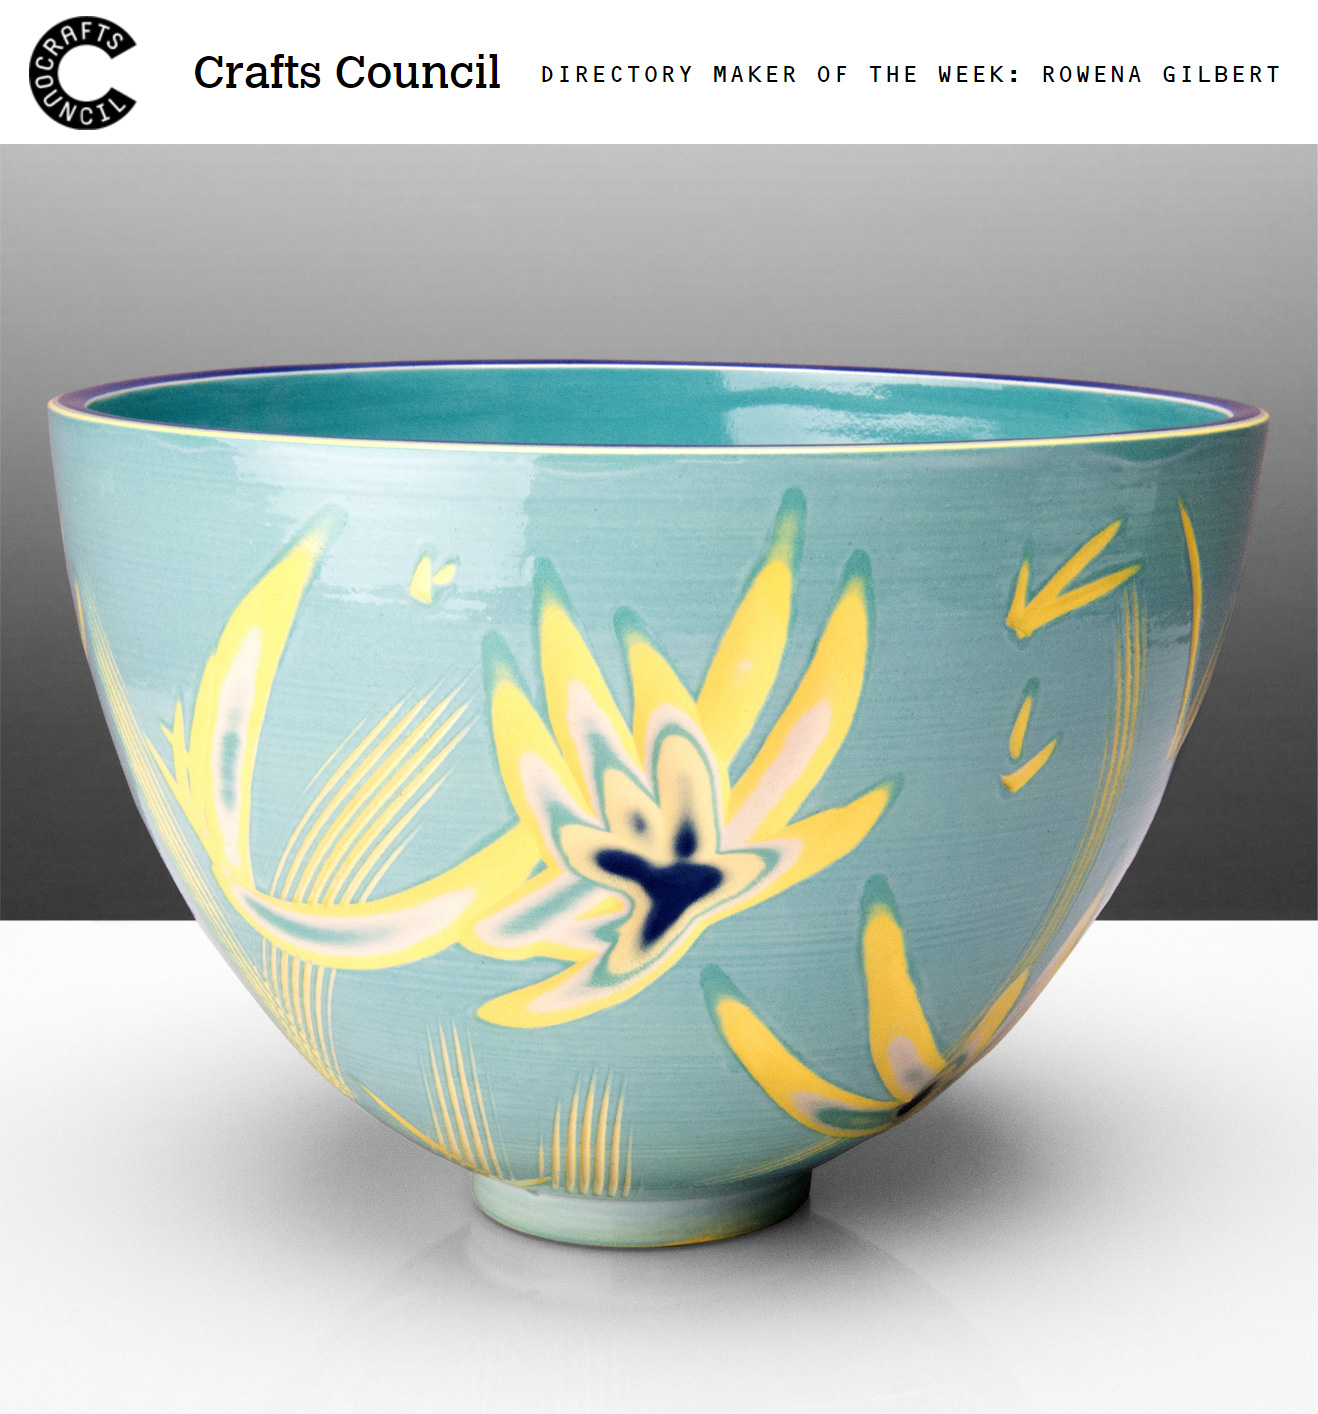 Please Click on Image to Read Interview   Please click here to view my Crafts Council Directory Profile